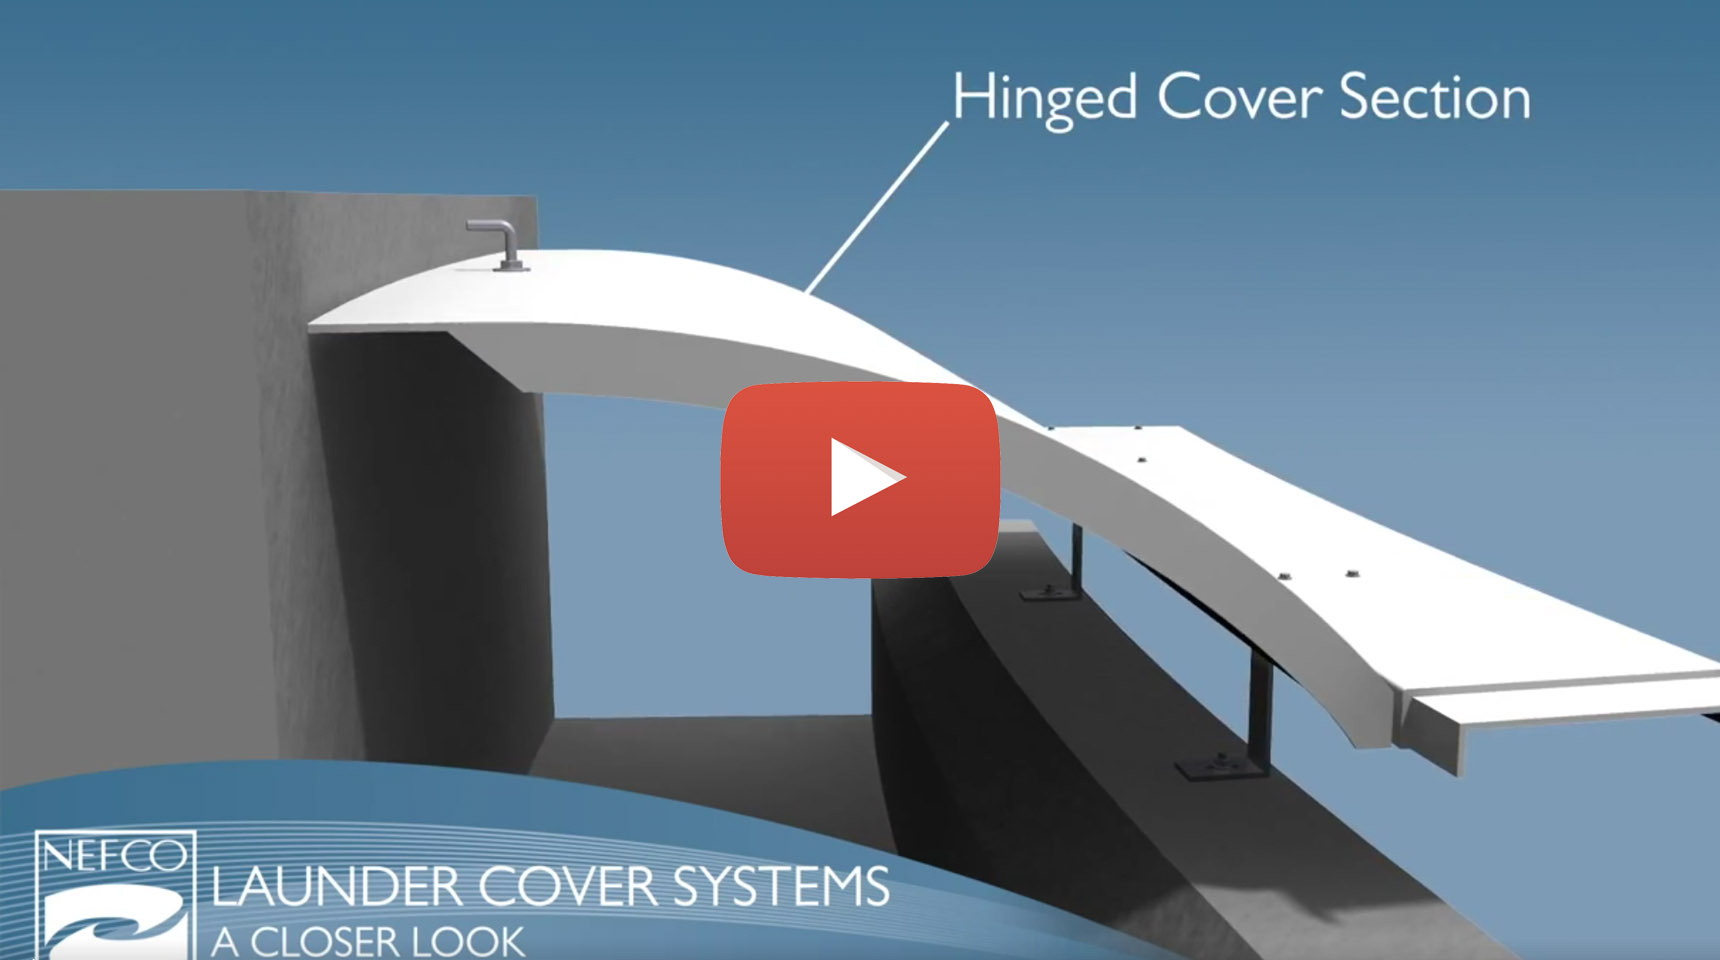 Launder Cover System Overview